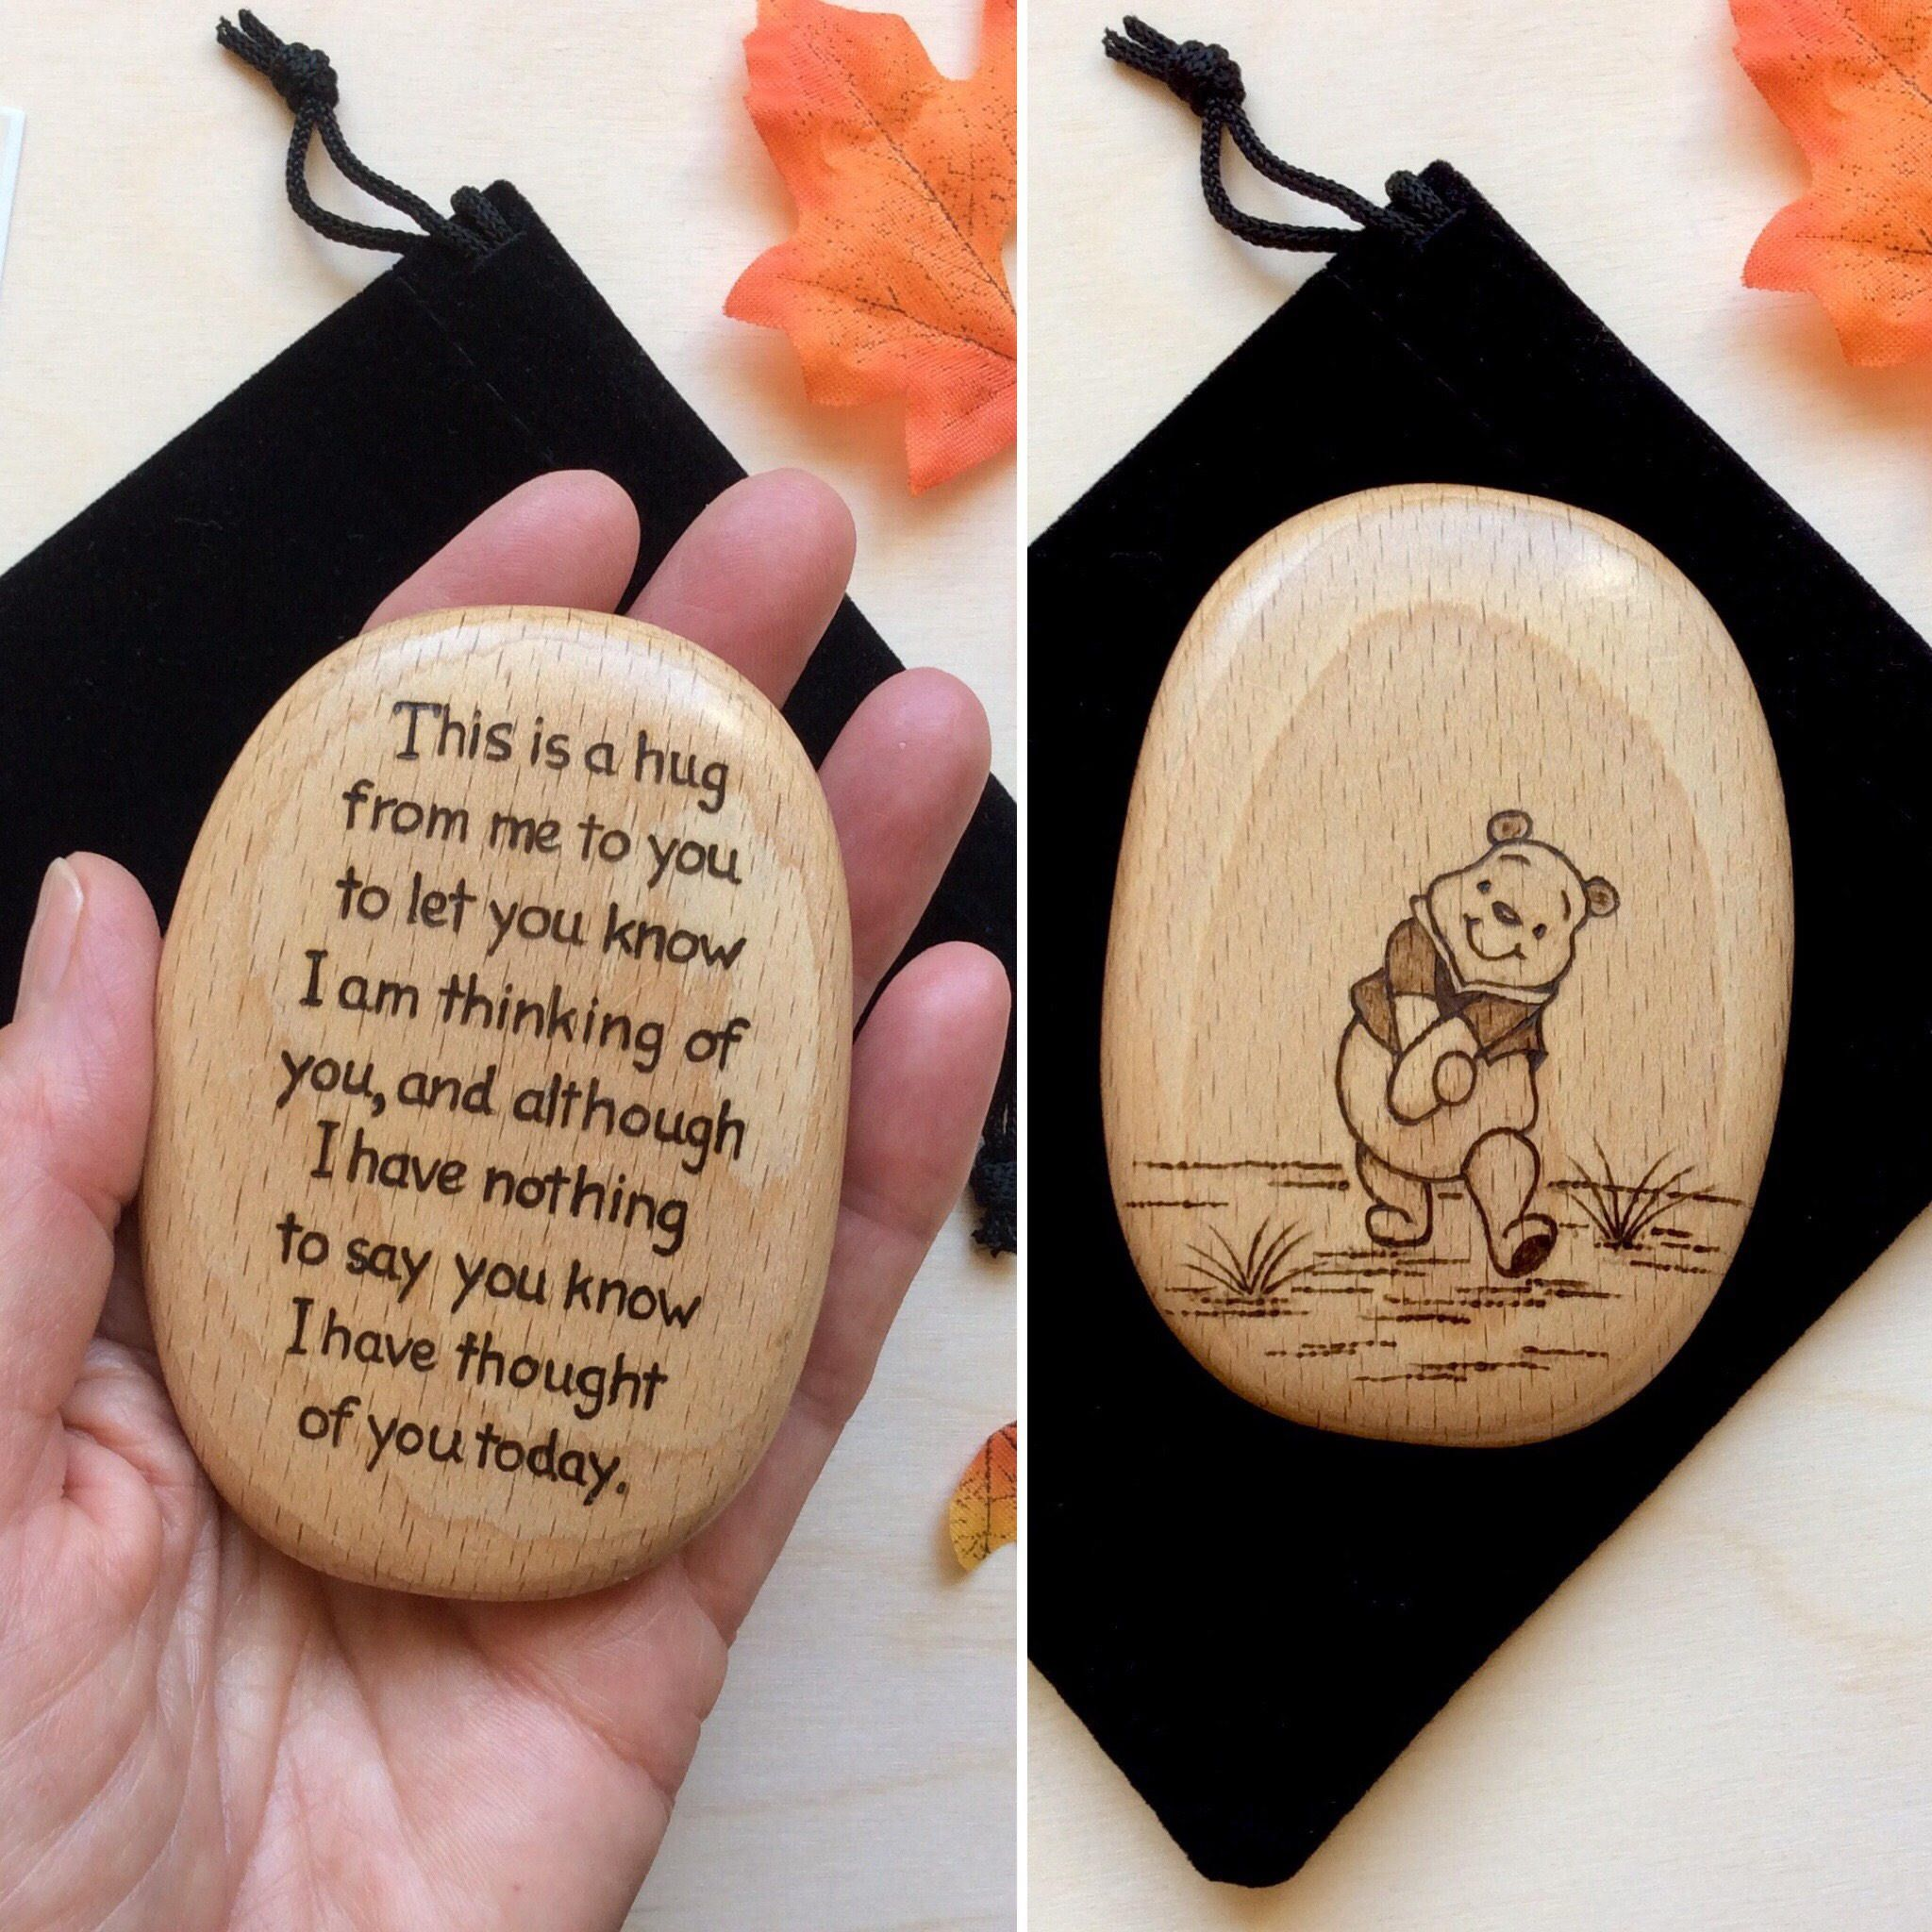 Send A Hug Winnie The Pooh Quote Wooden Pebble